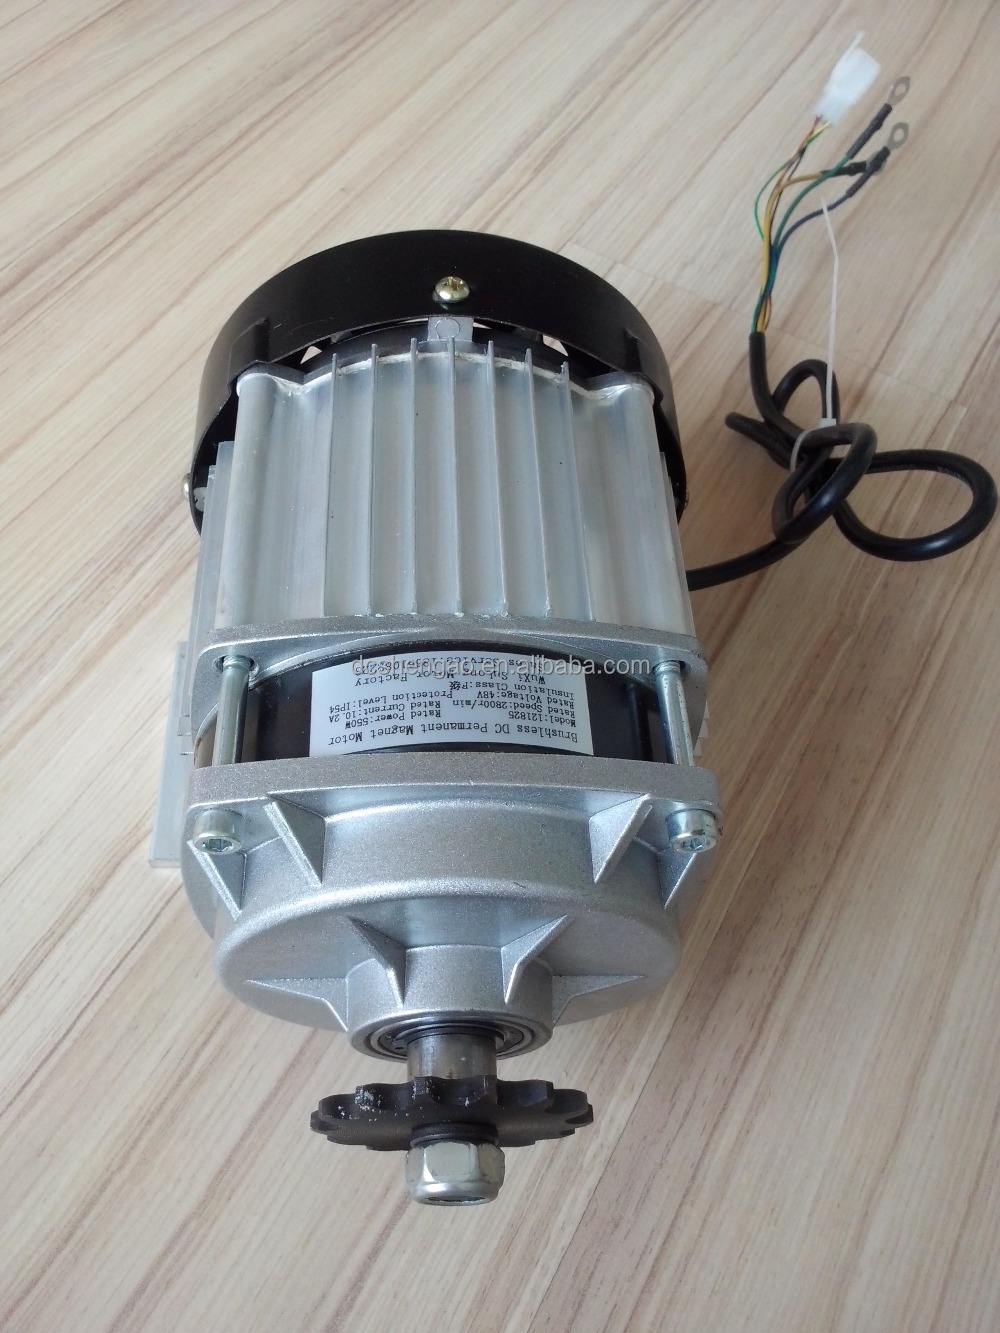 List manufacturers of electric motors for model trains for Brushless dc motor suppliers